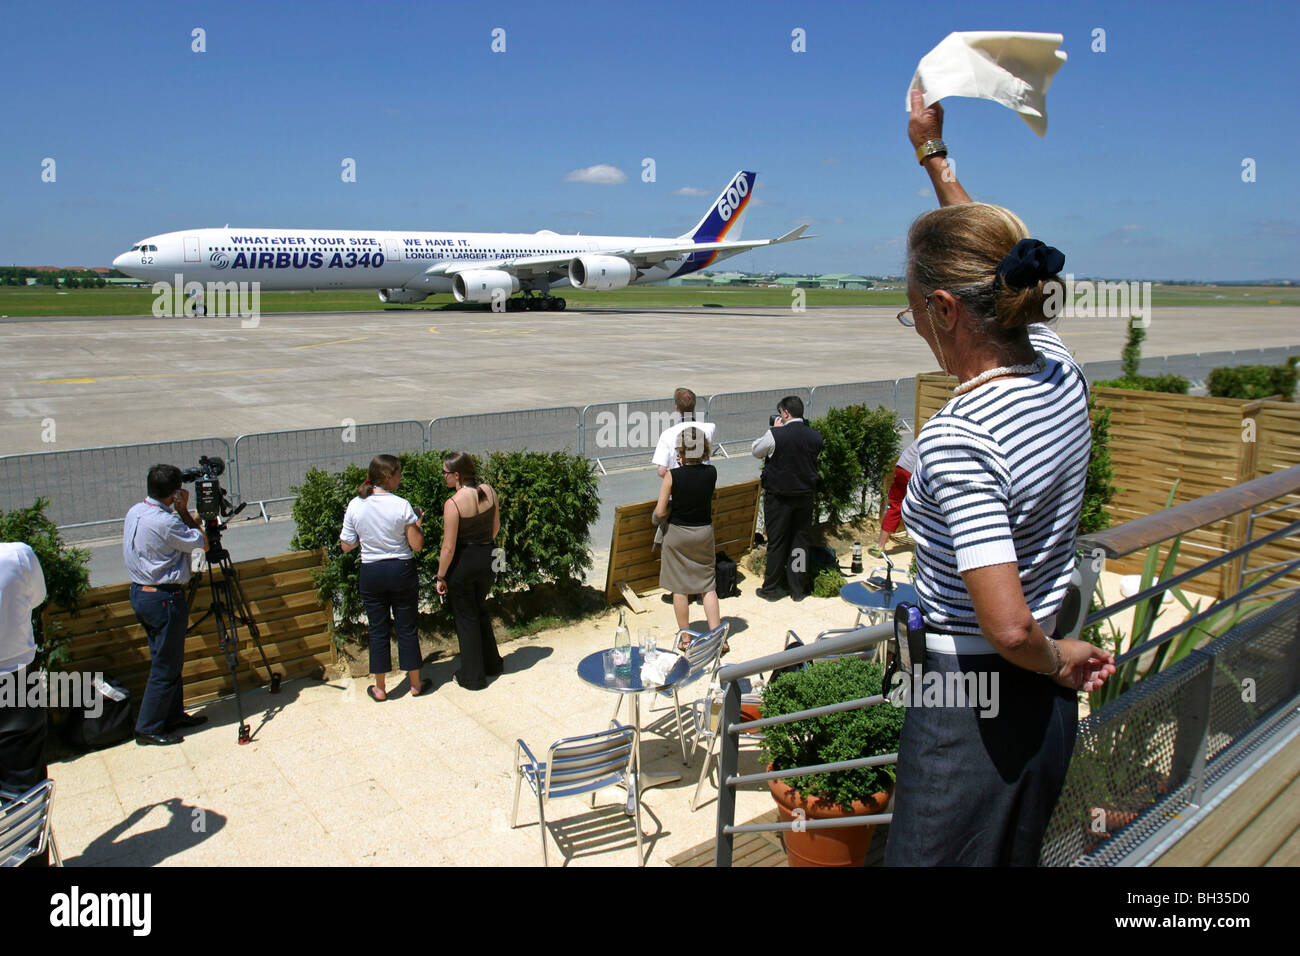 A 340 AT THE 46TH INTERNATIONAL AERONAUTICS FAIR IN BOURGET (JUNE 2005). A340 BEFORE TAKE-OFF, LE BOURGET (93) - Stock Image